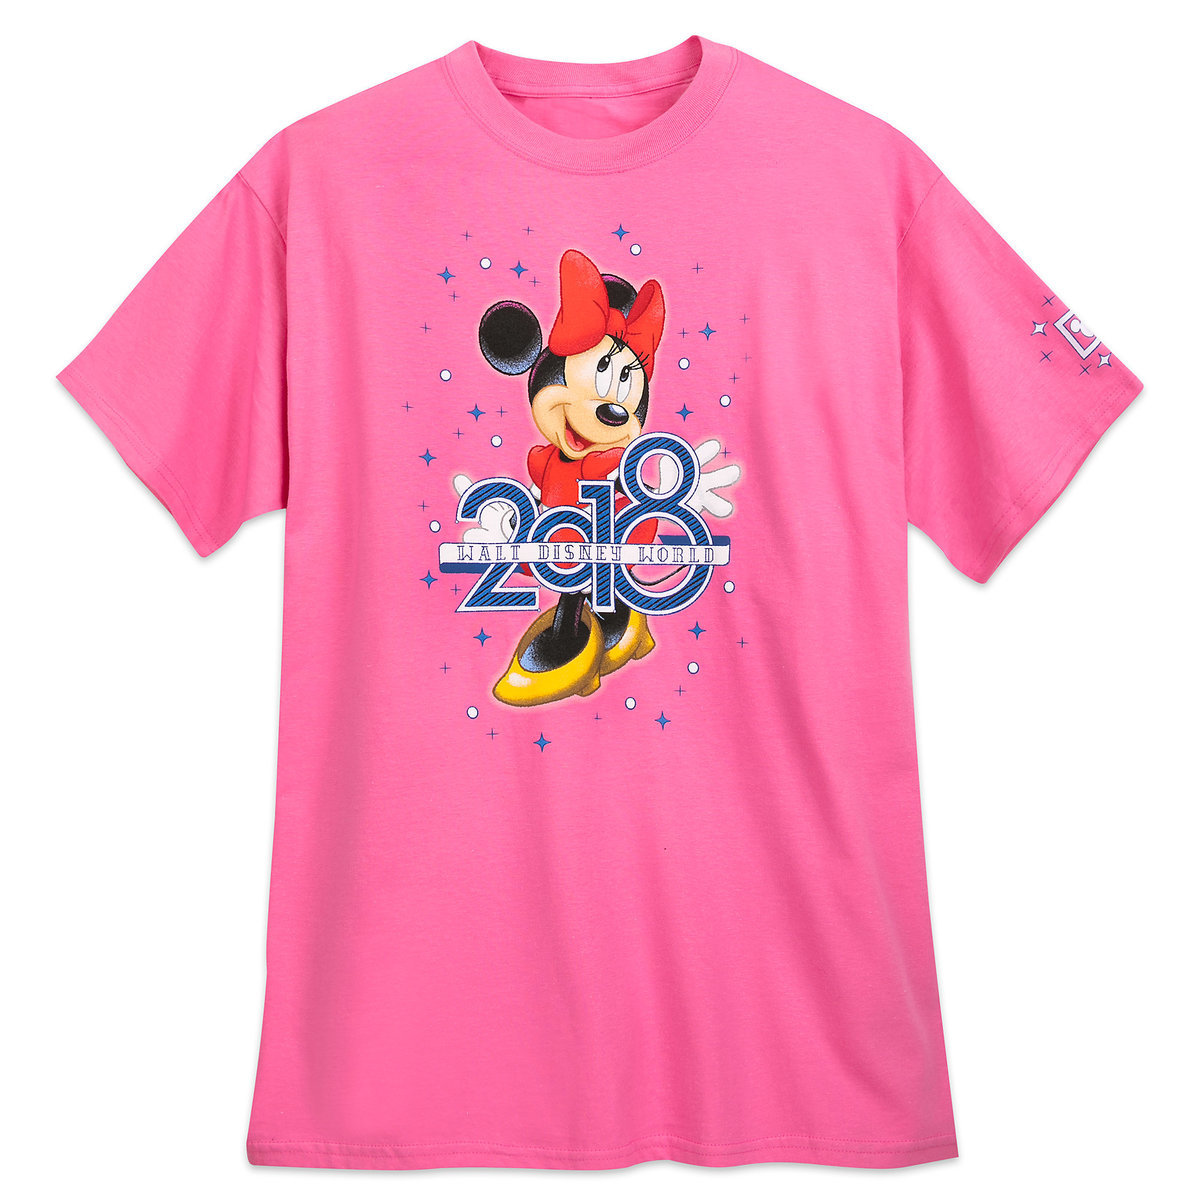 b062bd0c689bcd Product Image of Minnie Mouse T-Shirt for Adults - Walt Disney World 2018